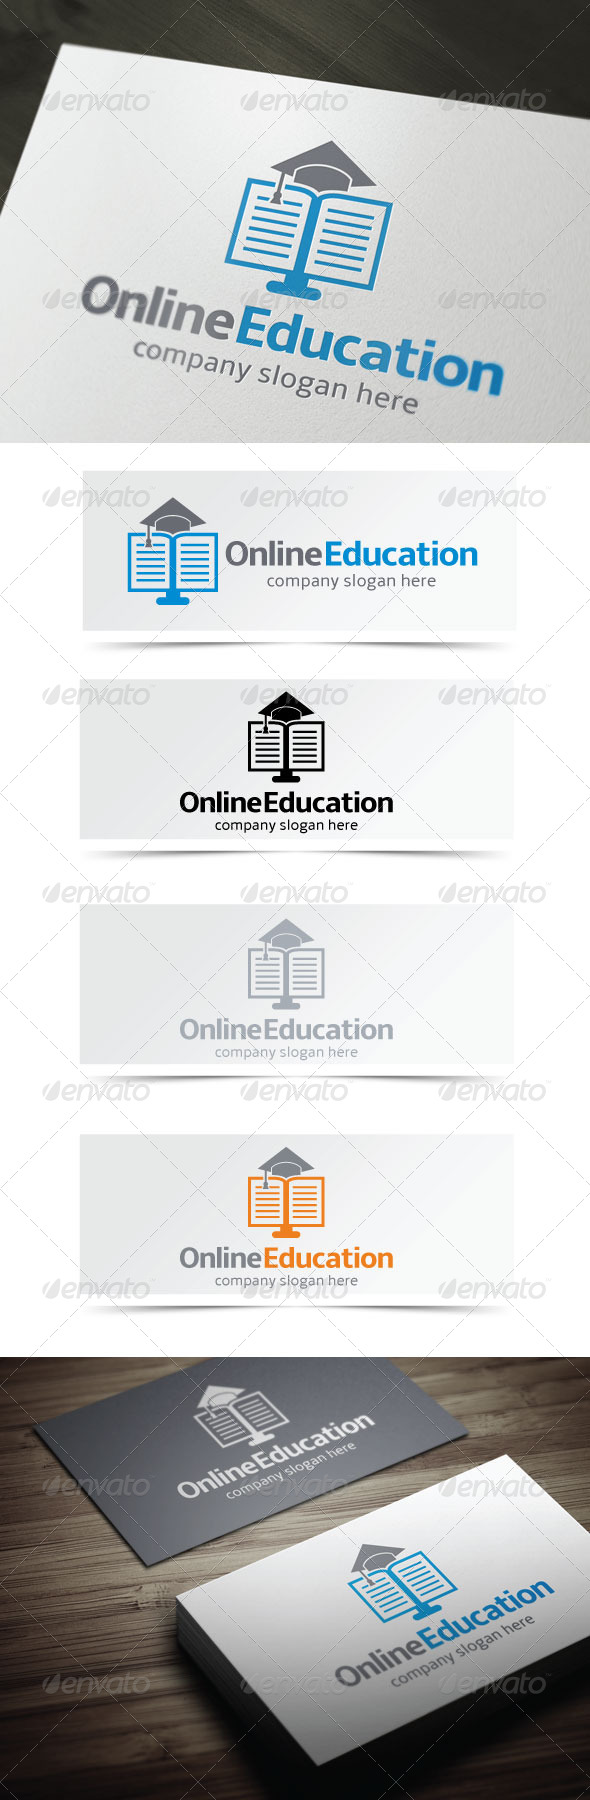 GraphicRiver Online Education 4322098